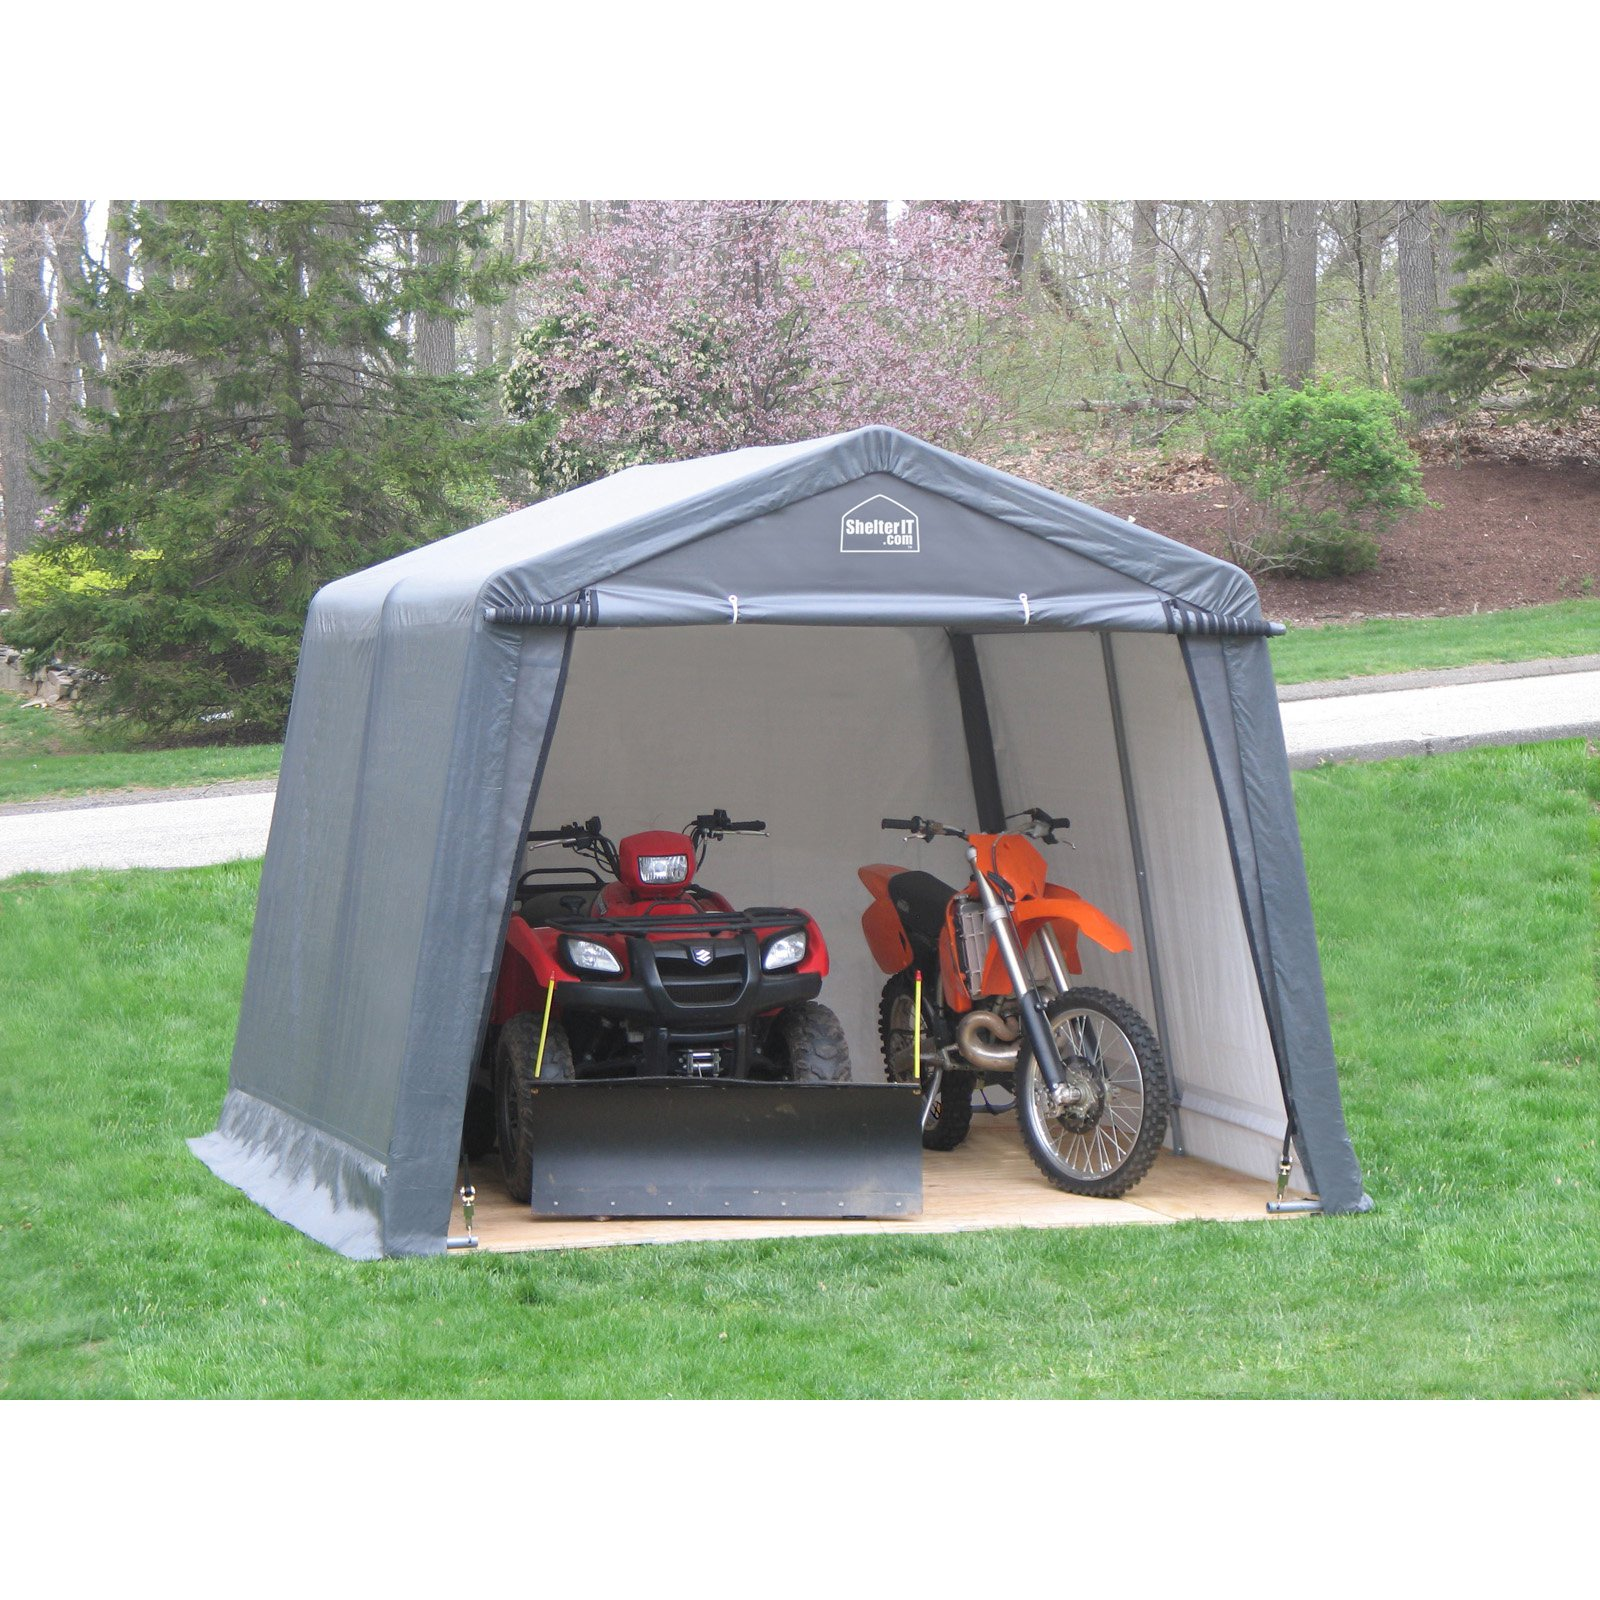 New England Outdoor Instant Garage  sc 1 st  Walmart & New England Outdoor Instant Garage - Walmart.com